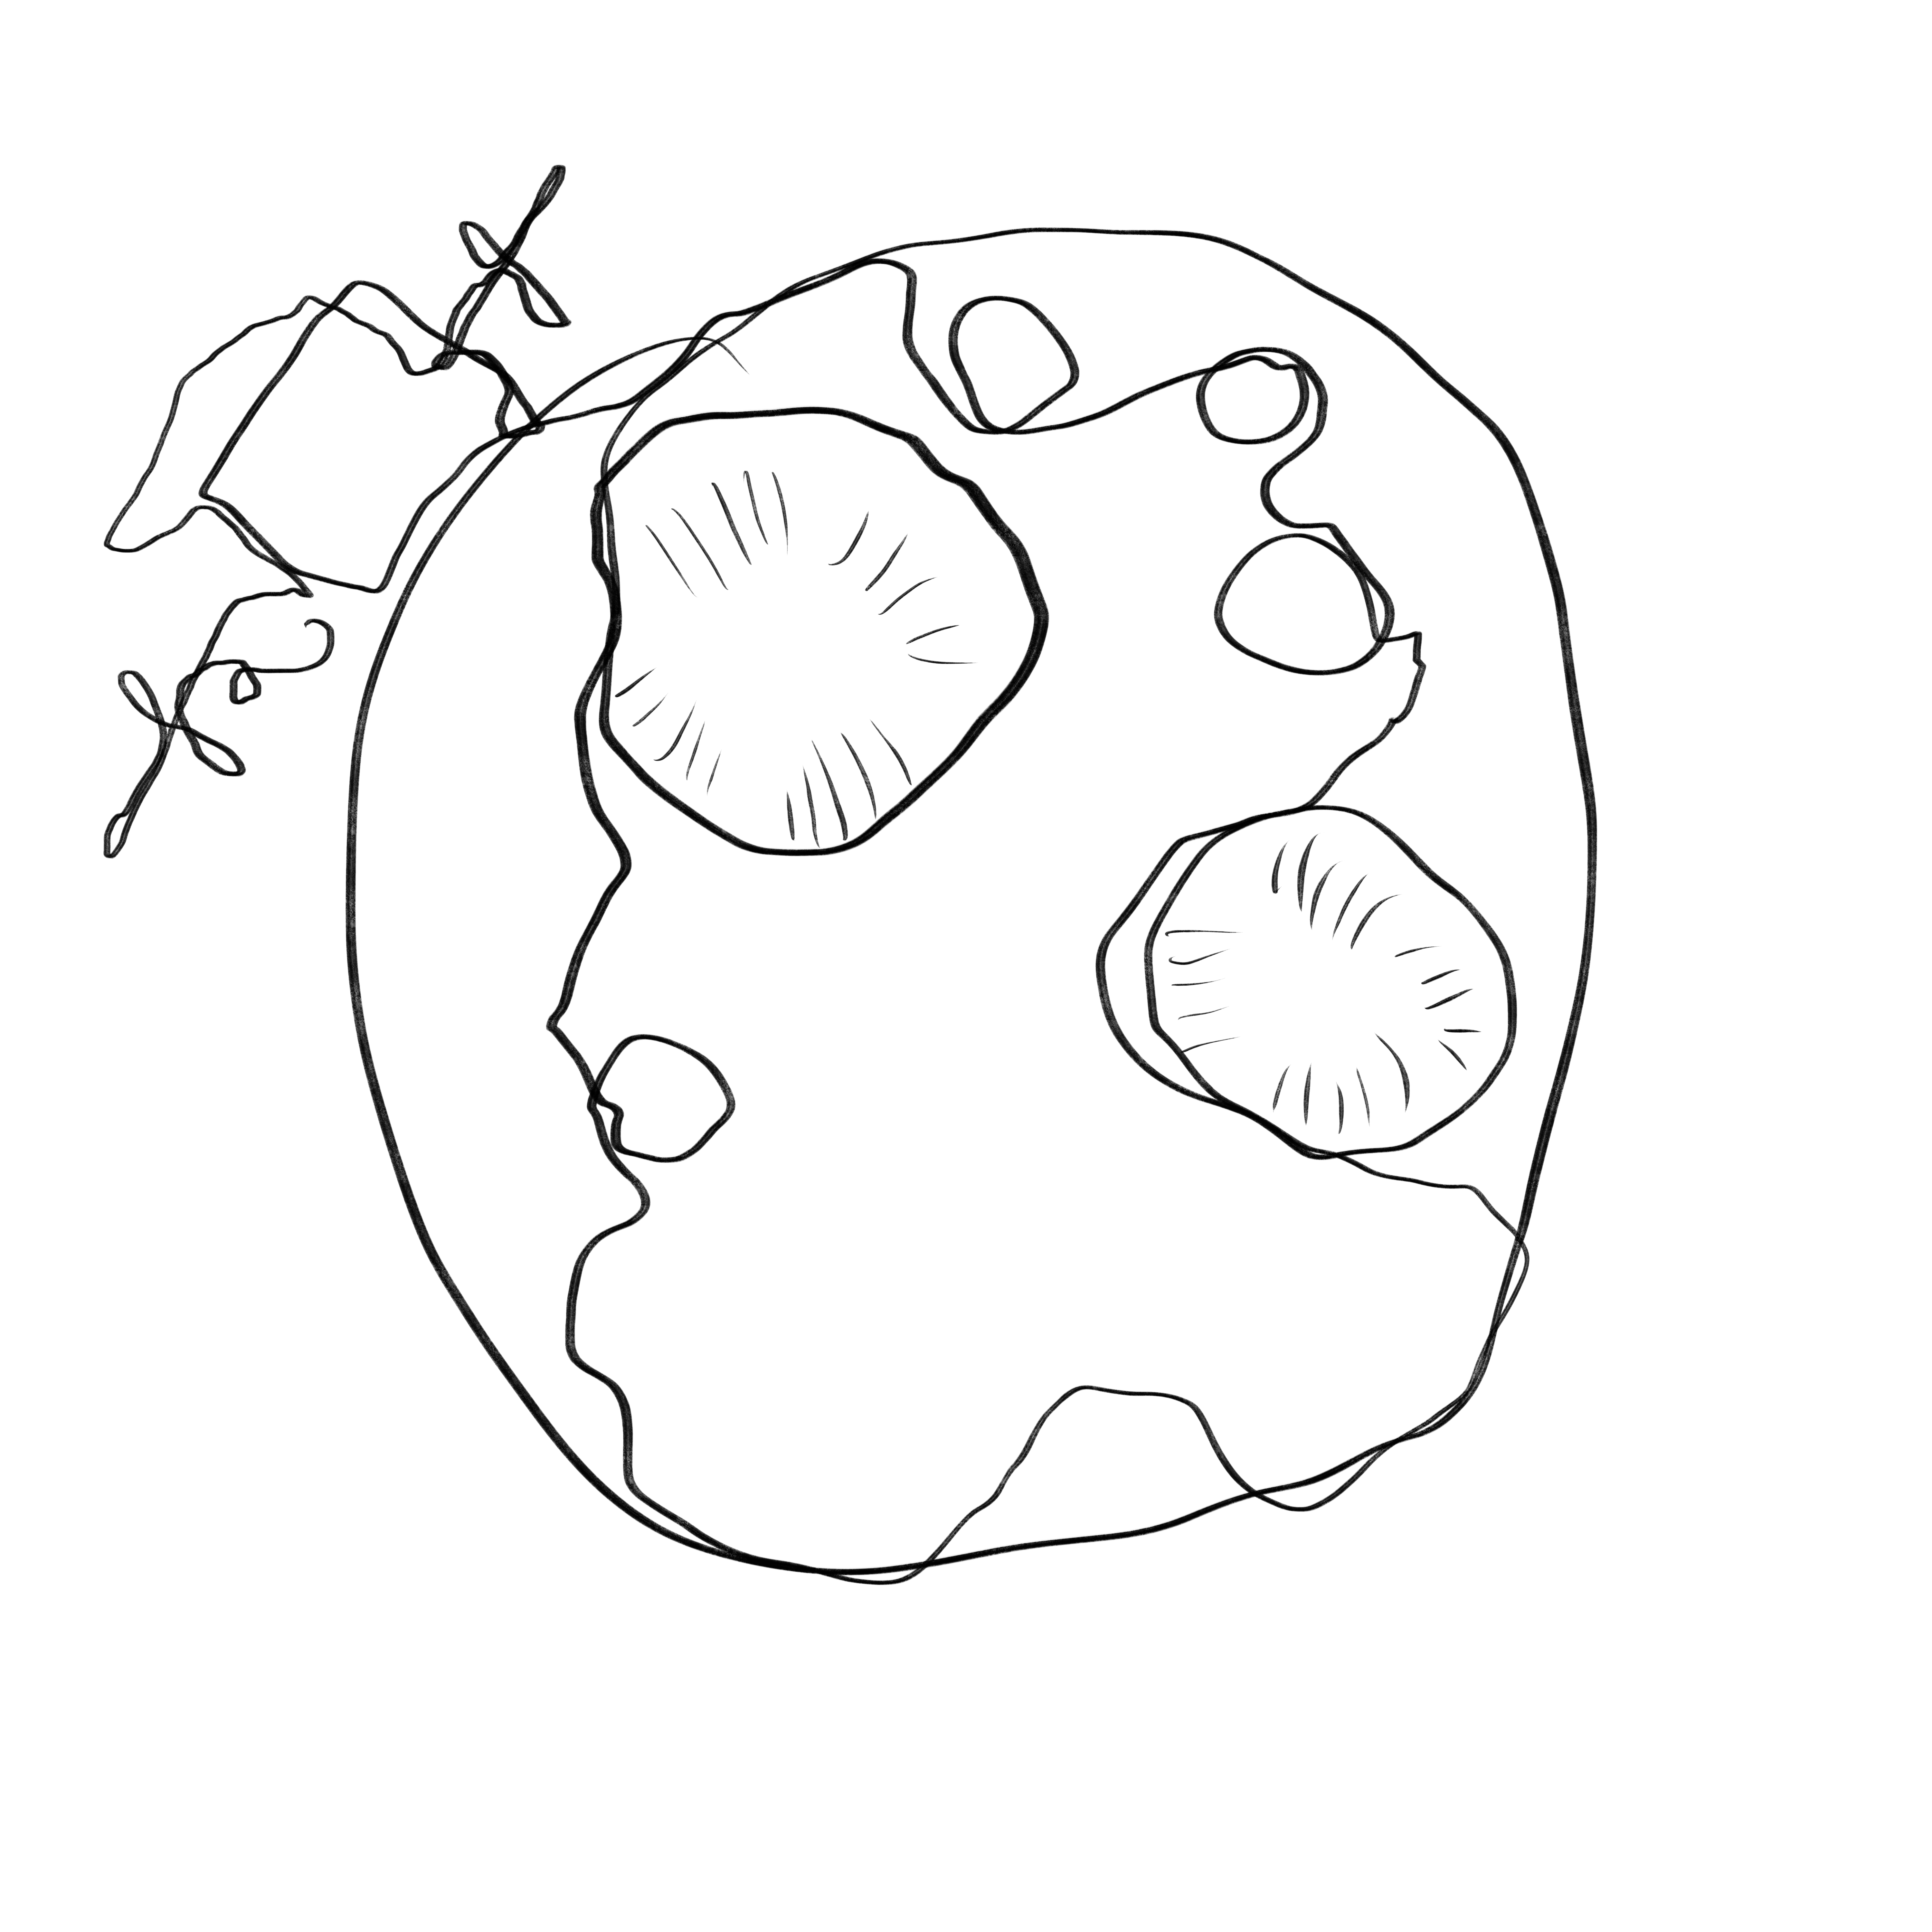 A simple pencil drawing of psyche the asteroid and spacecraft